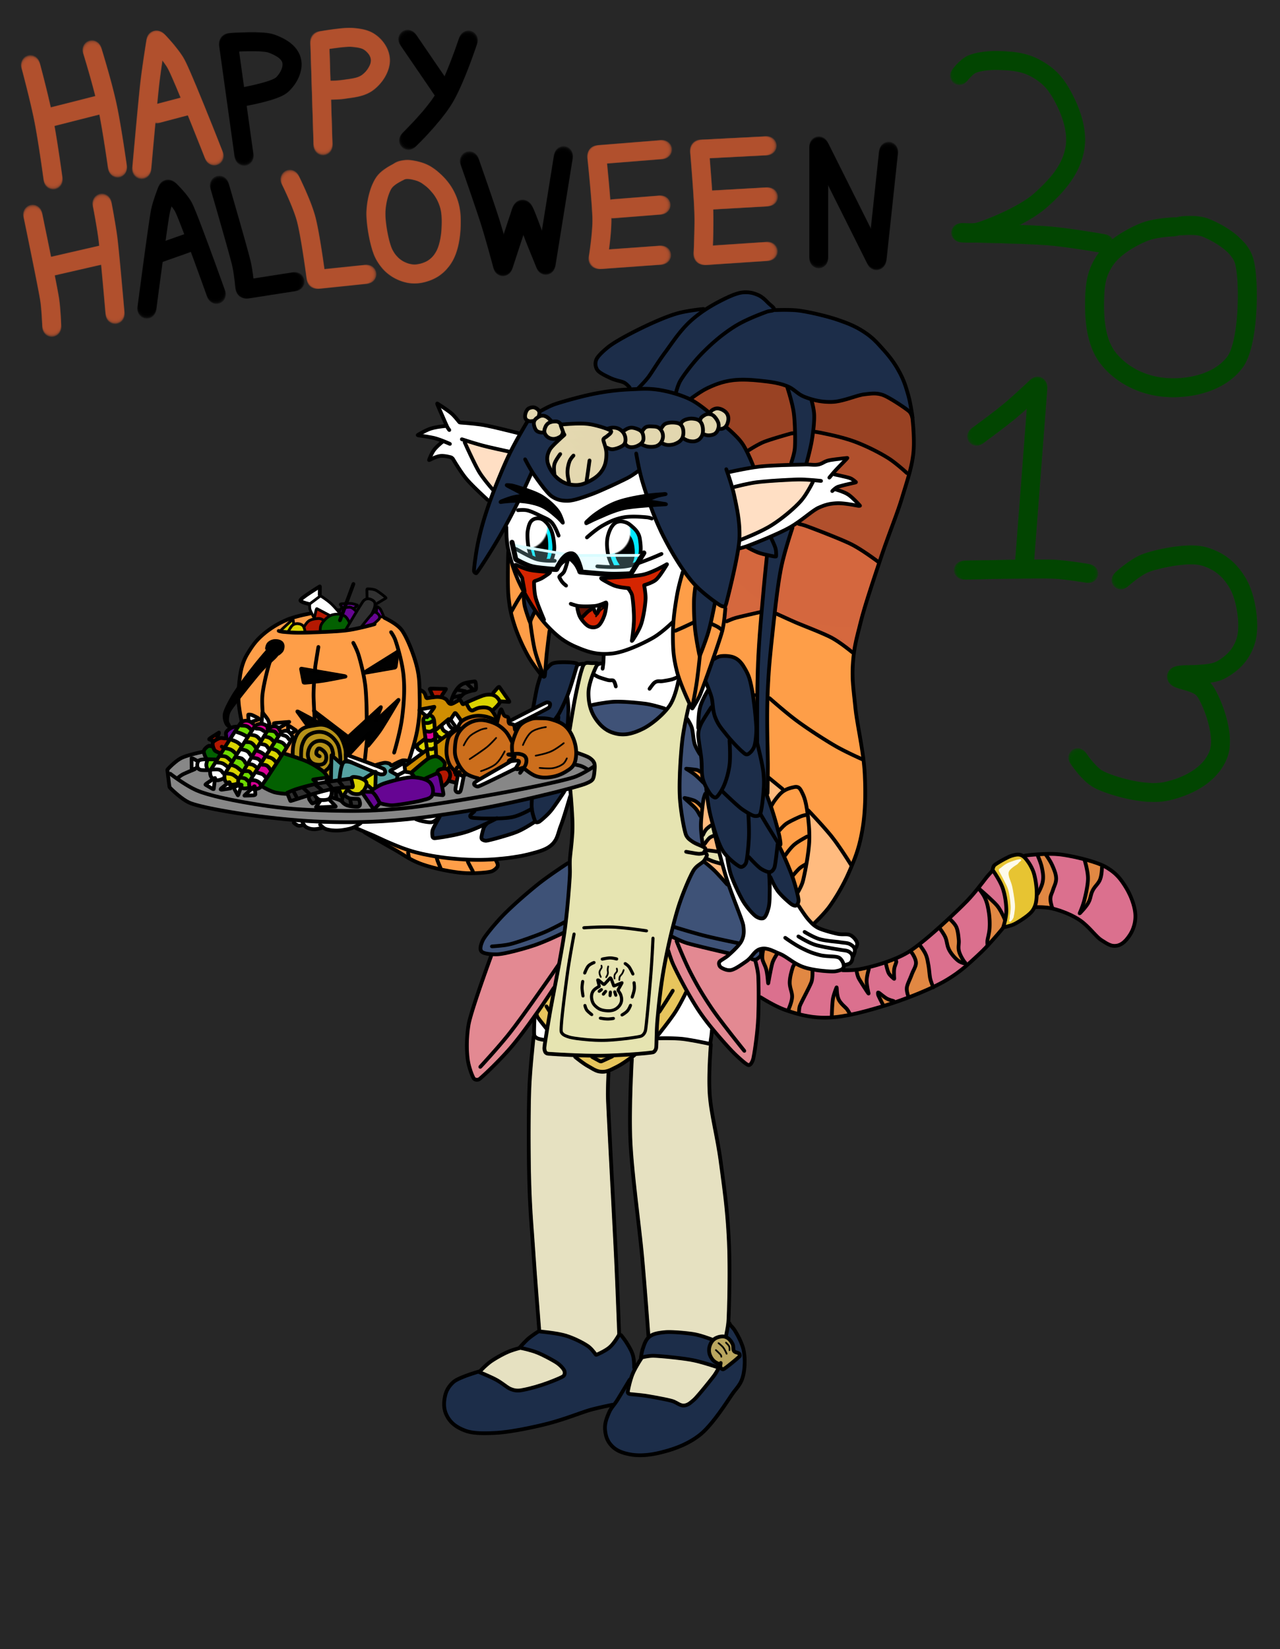 Halloween 2013 by metalzaki